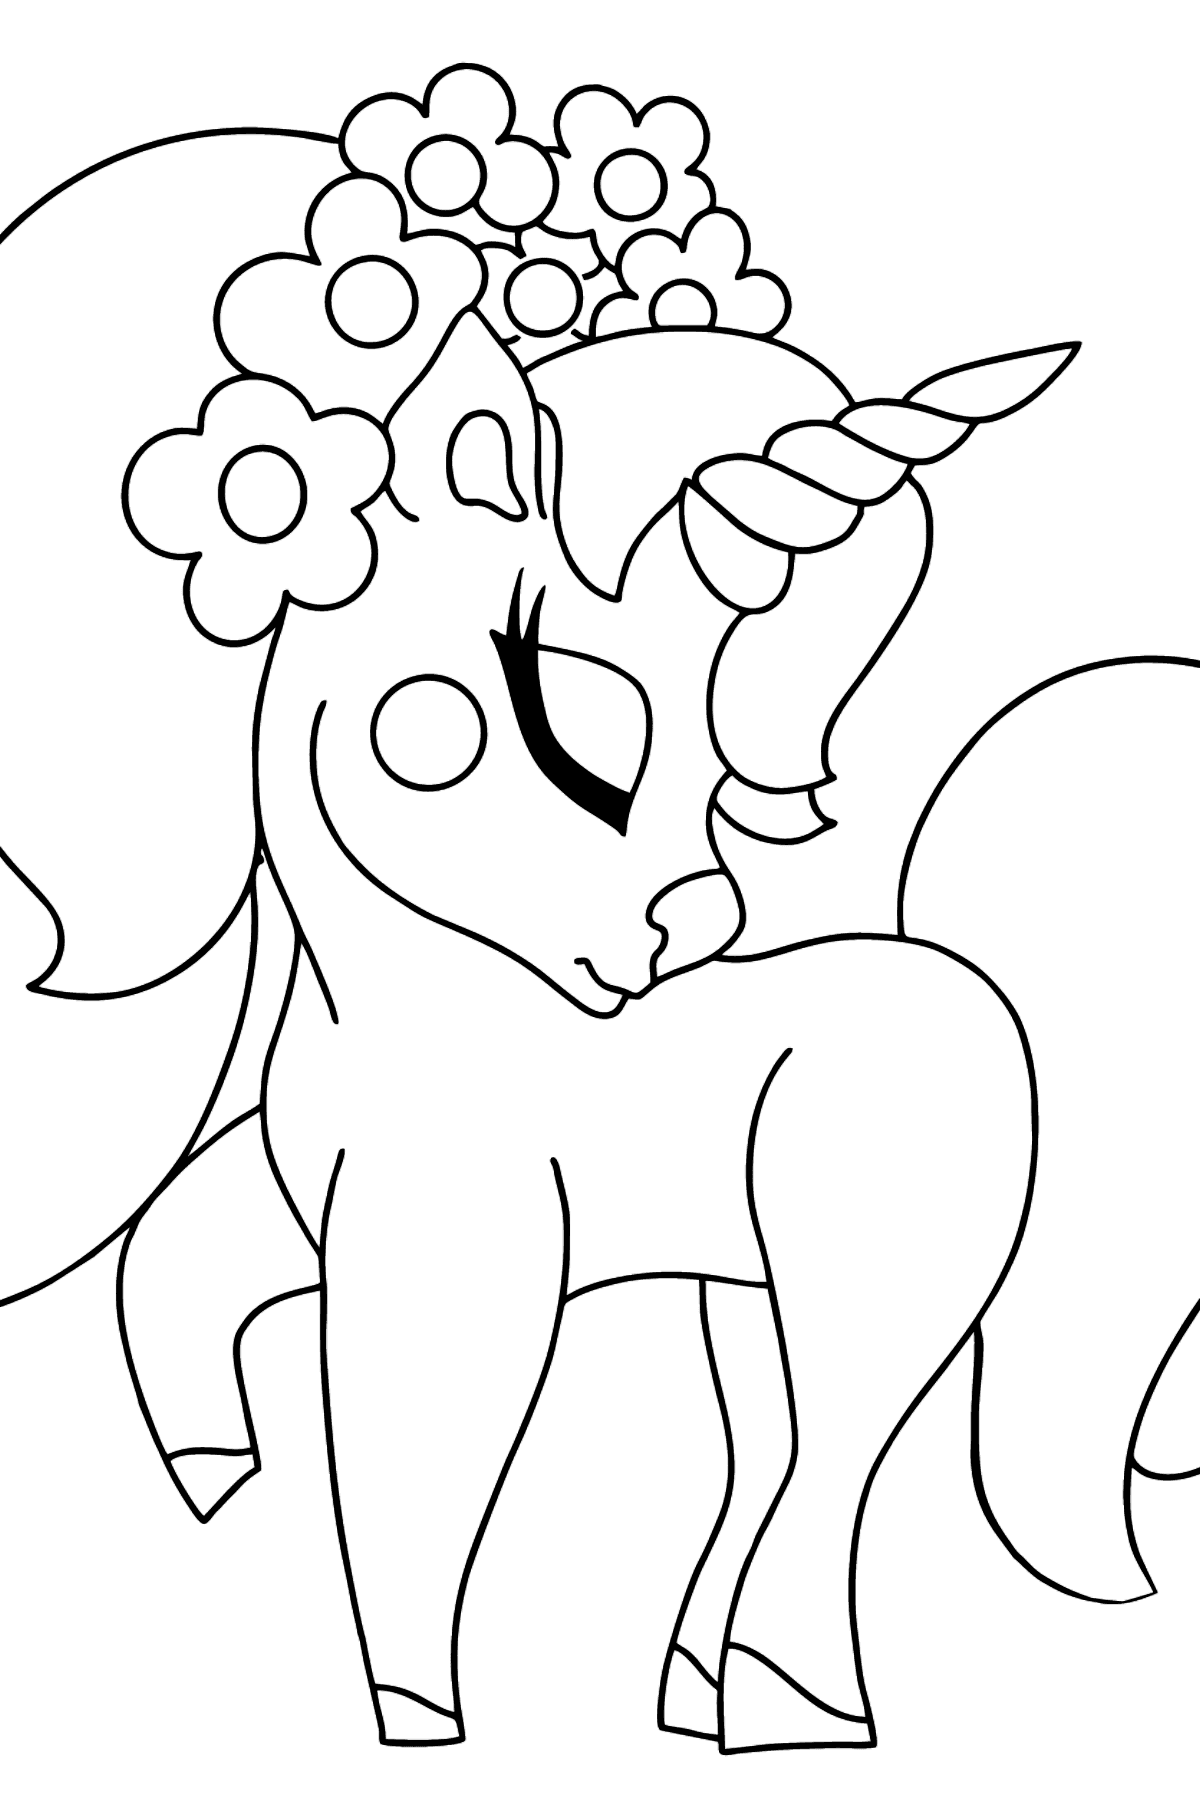 Coloring Page - A Dreamy Unicorn - Coloring Pages for Kids